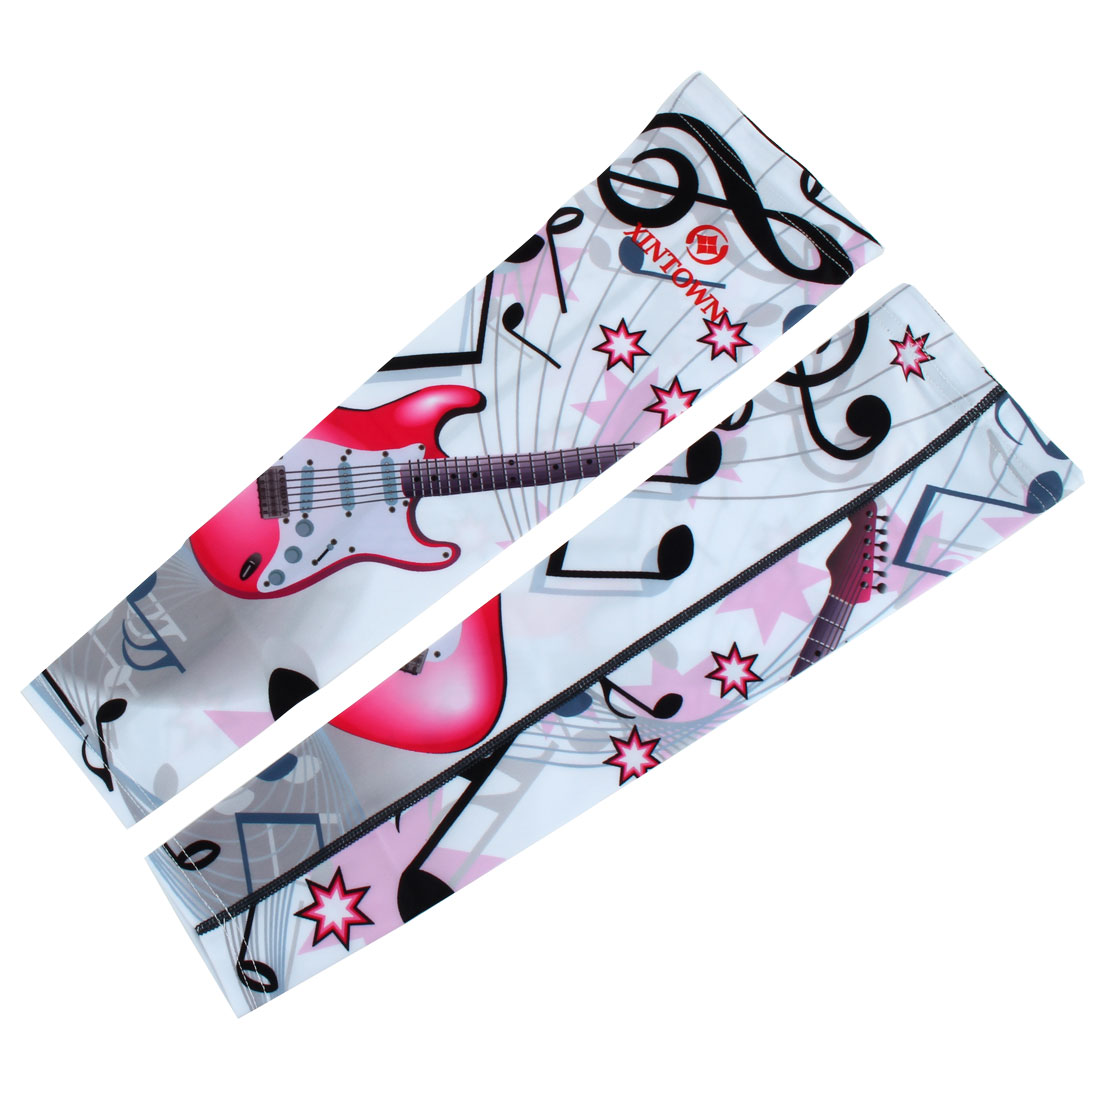 XINTOWN Authorized Unisex Cycling Football Arm Sleeves Cover Warmer #3 3XL Pair by